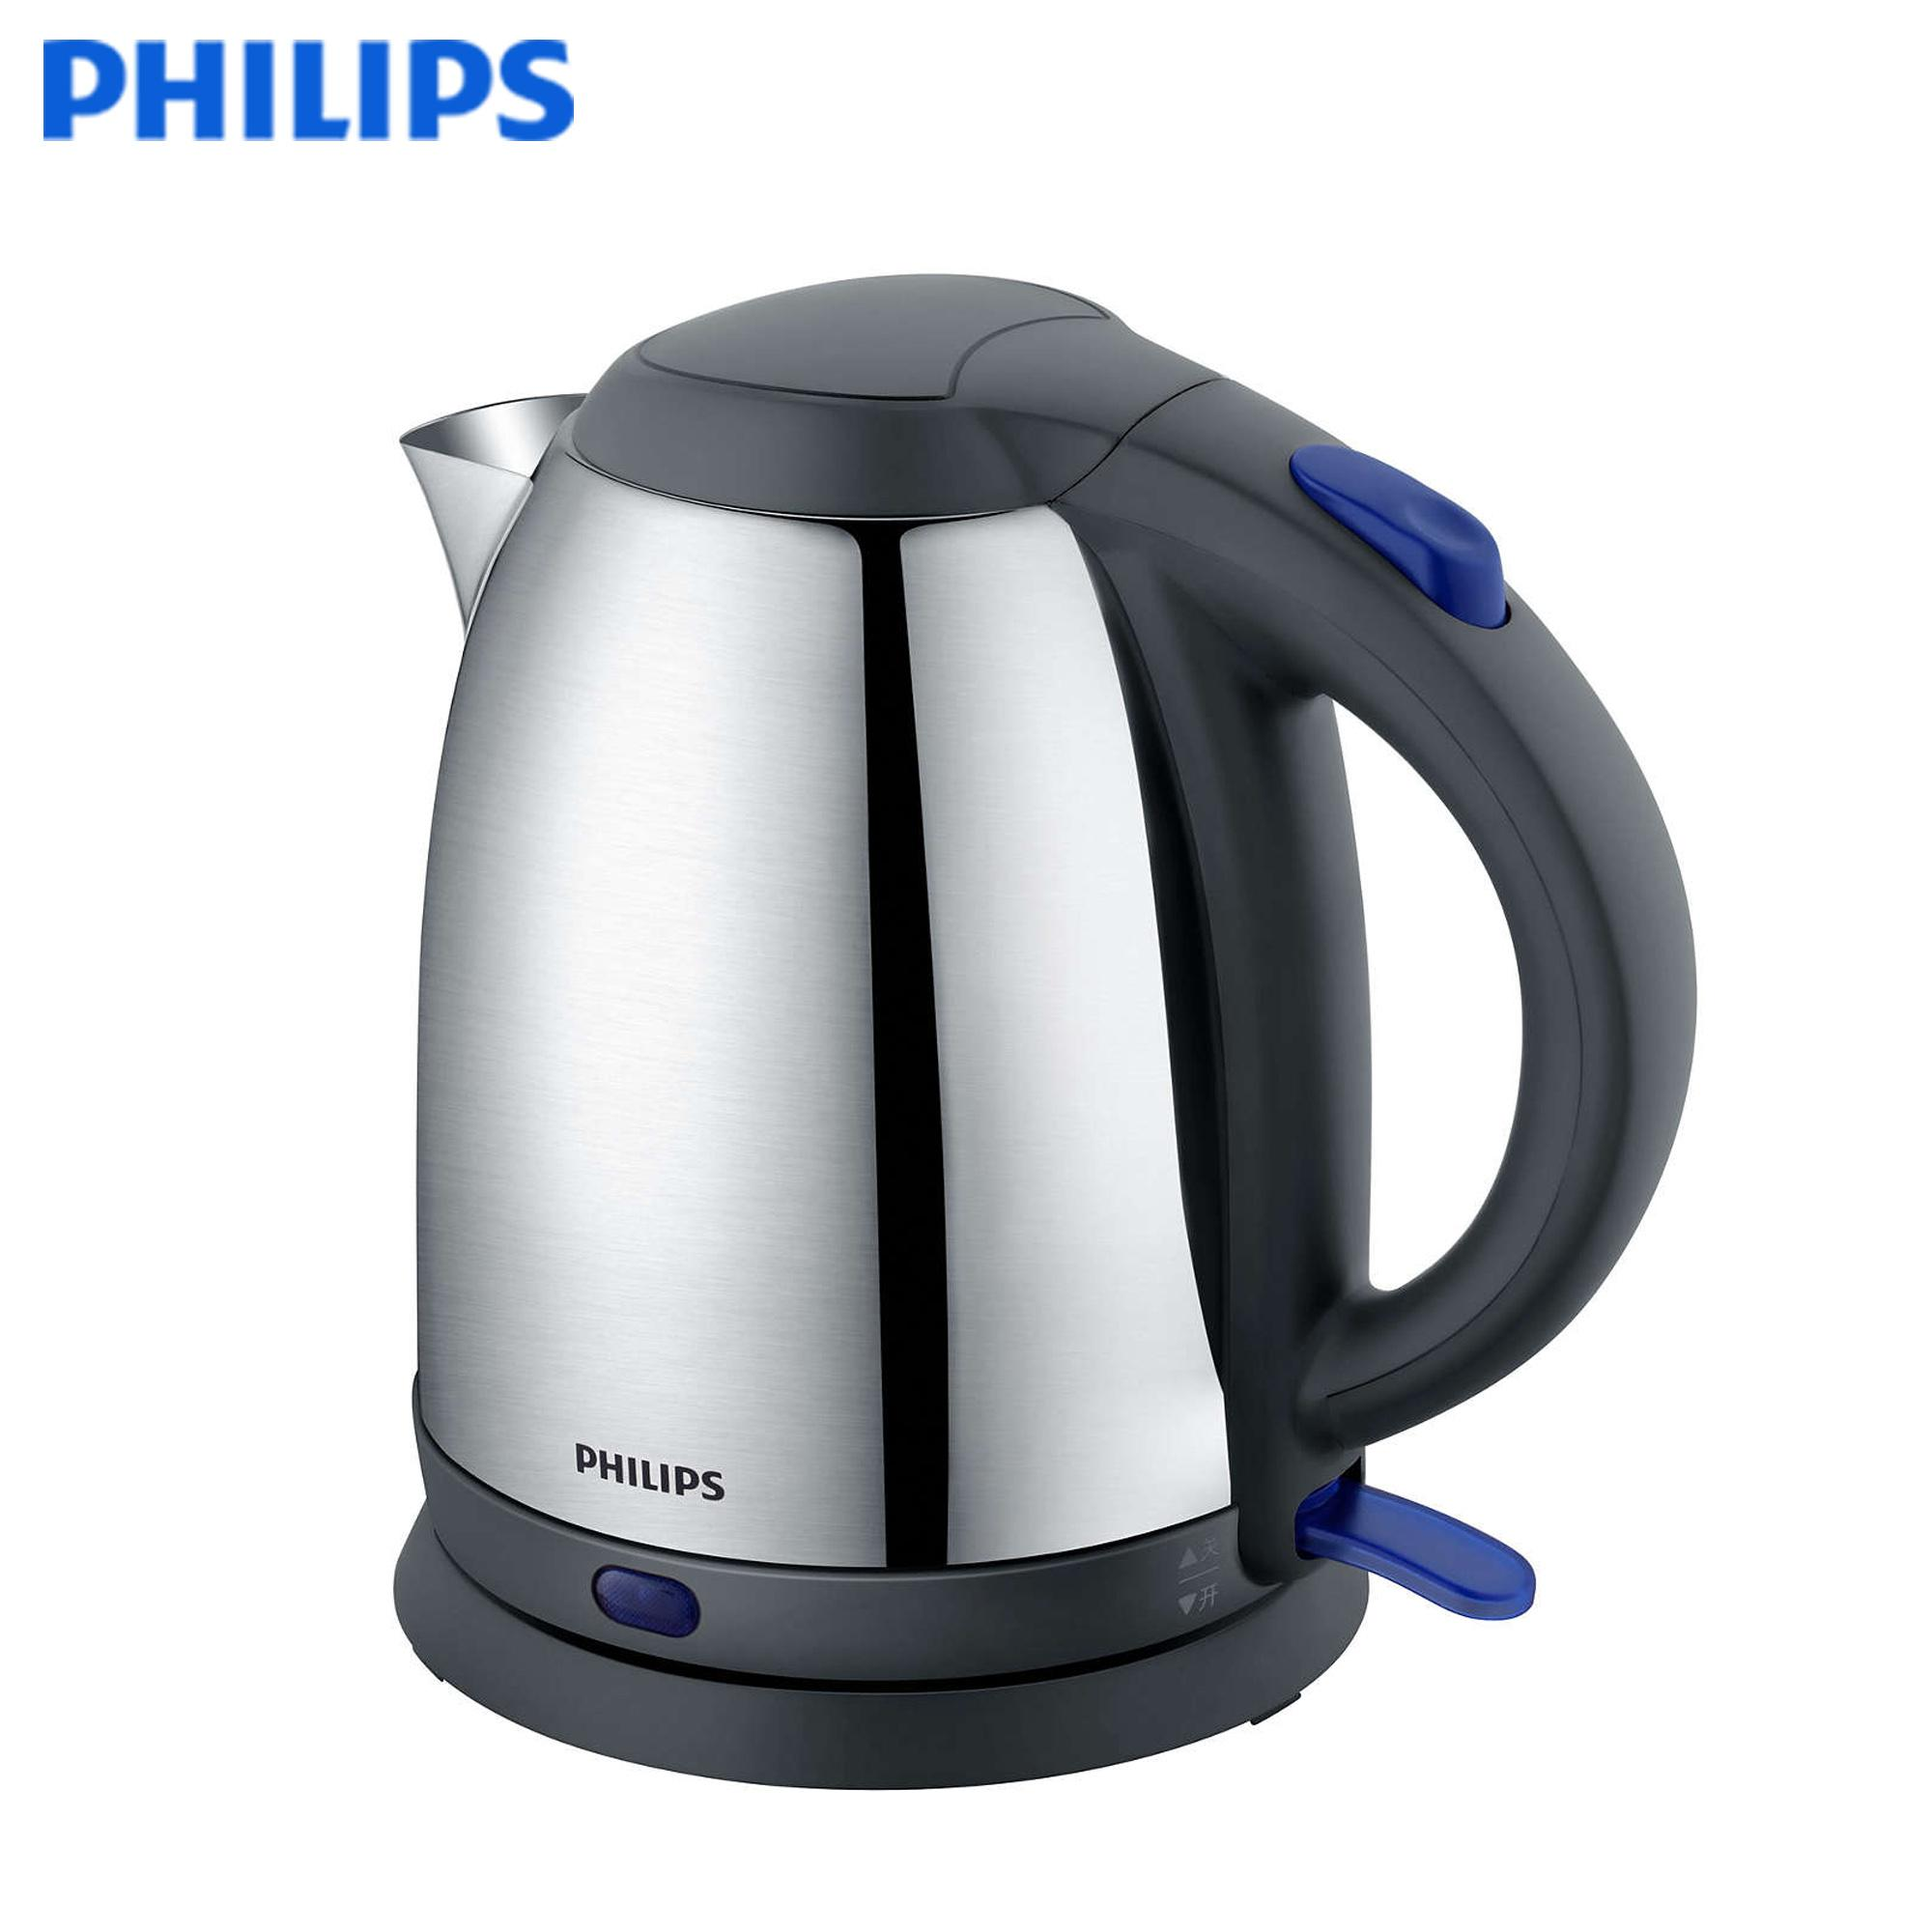 Buy Philips Daily Collection Kettle 1 5L Hd9306 9313 Philips Online